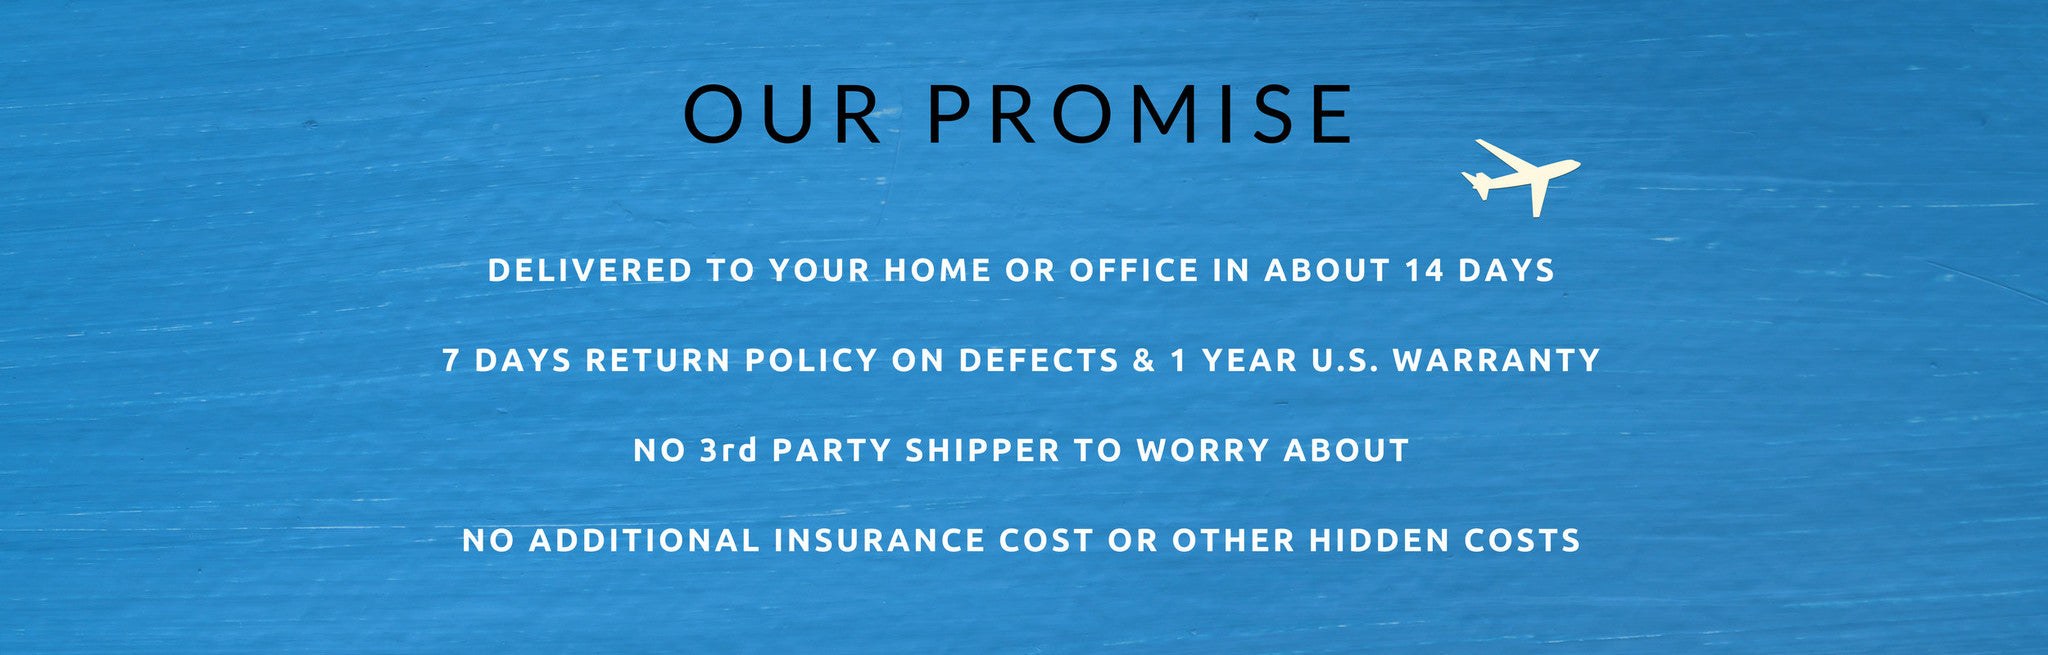 Our Promise HK Deal N Ship